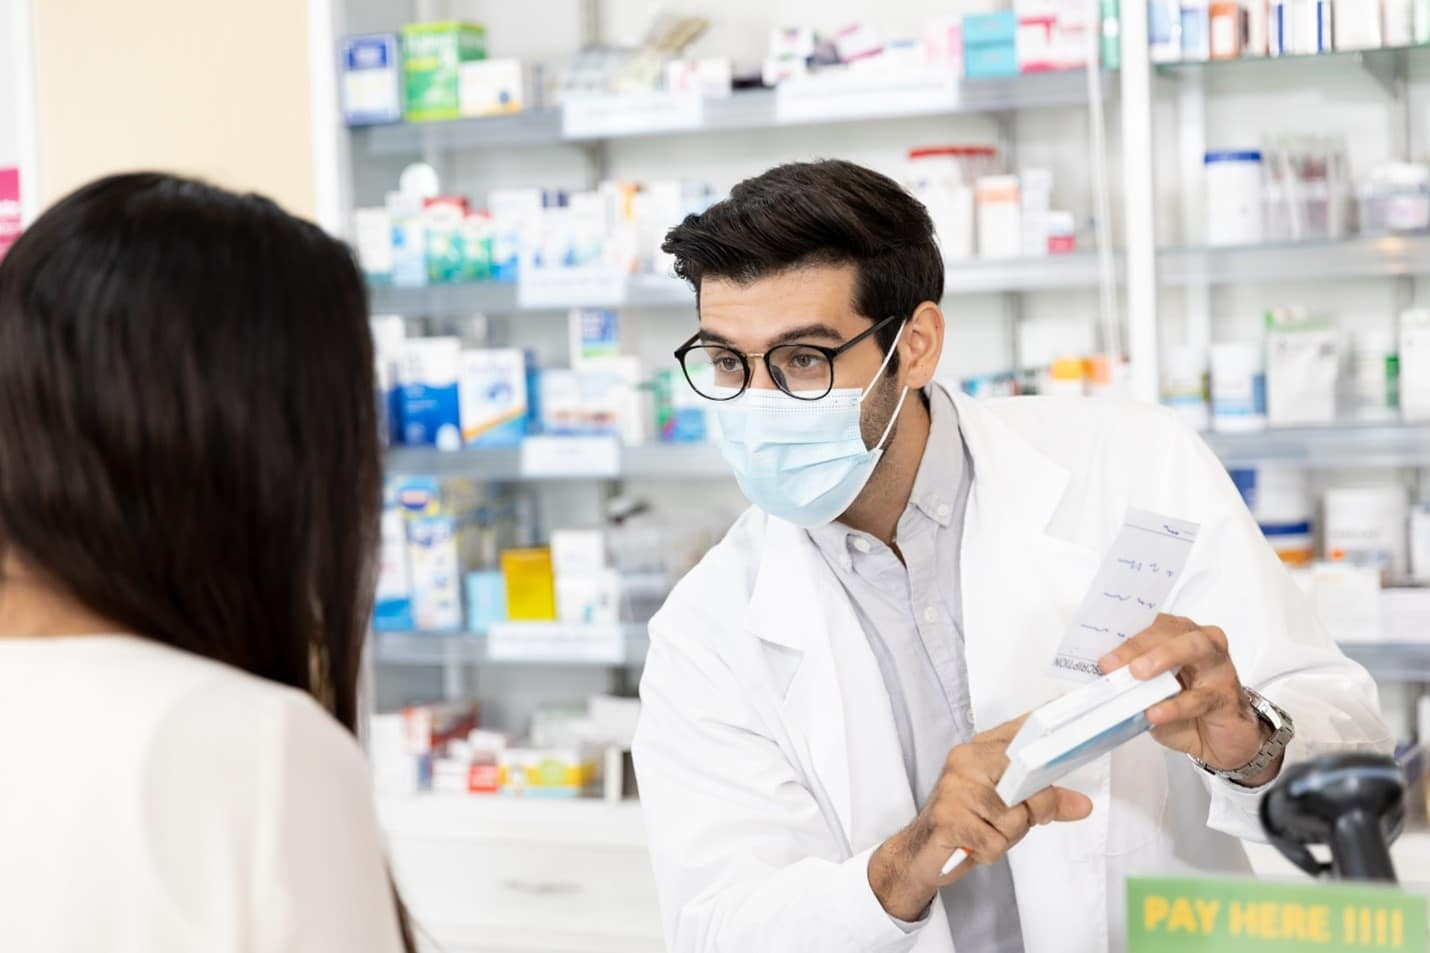 Pharmacist explaining a medication to a customer.